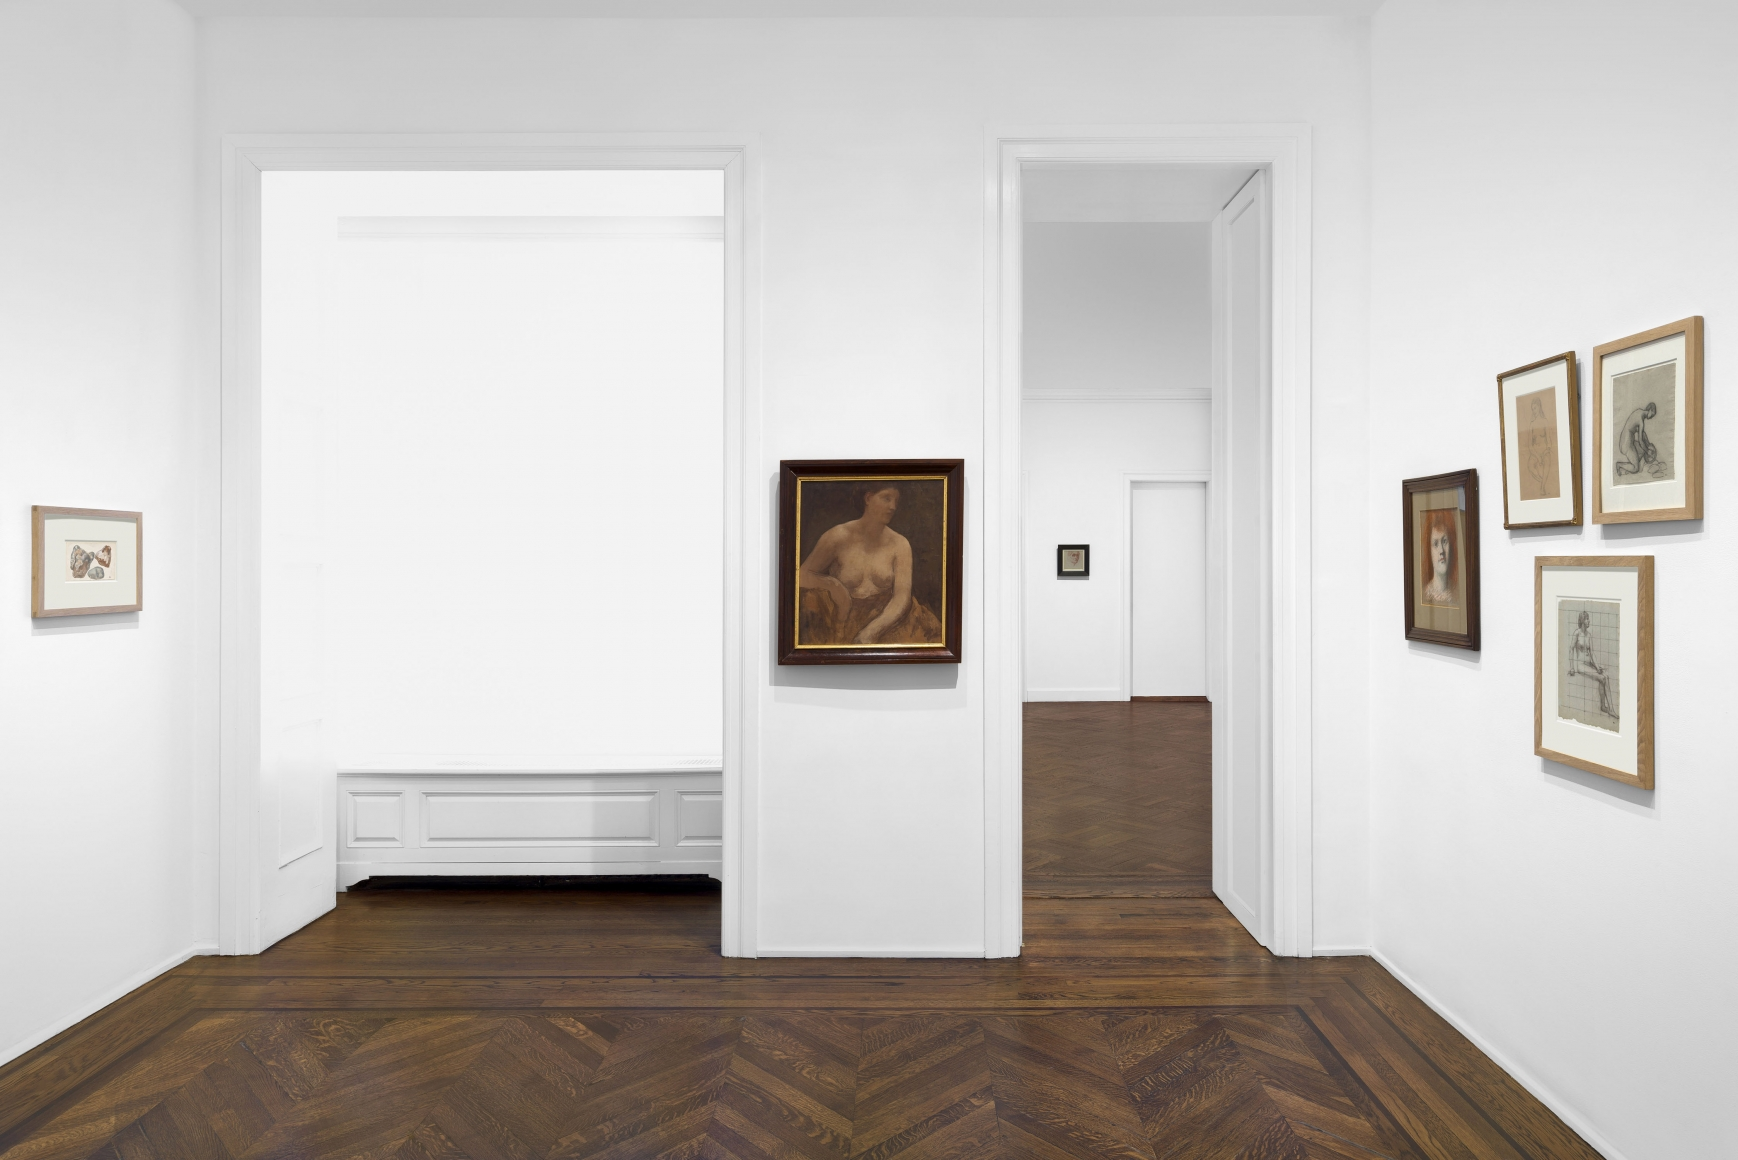 PIERRE PUVIS DE CHAVANNES, Works on Paper and Paintings, New York, 2018, Installation Image 11